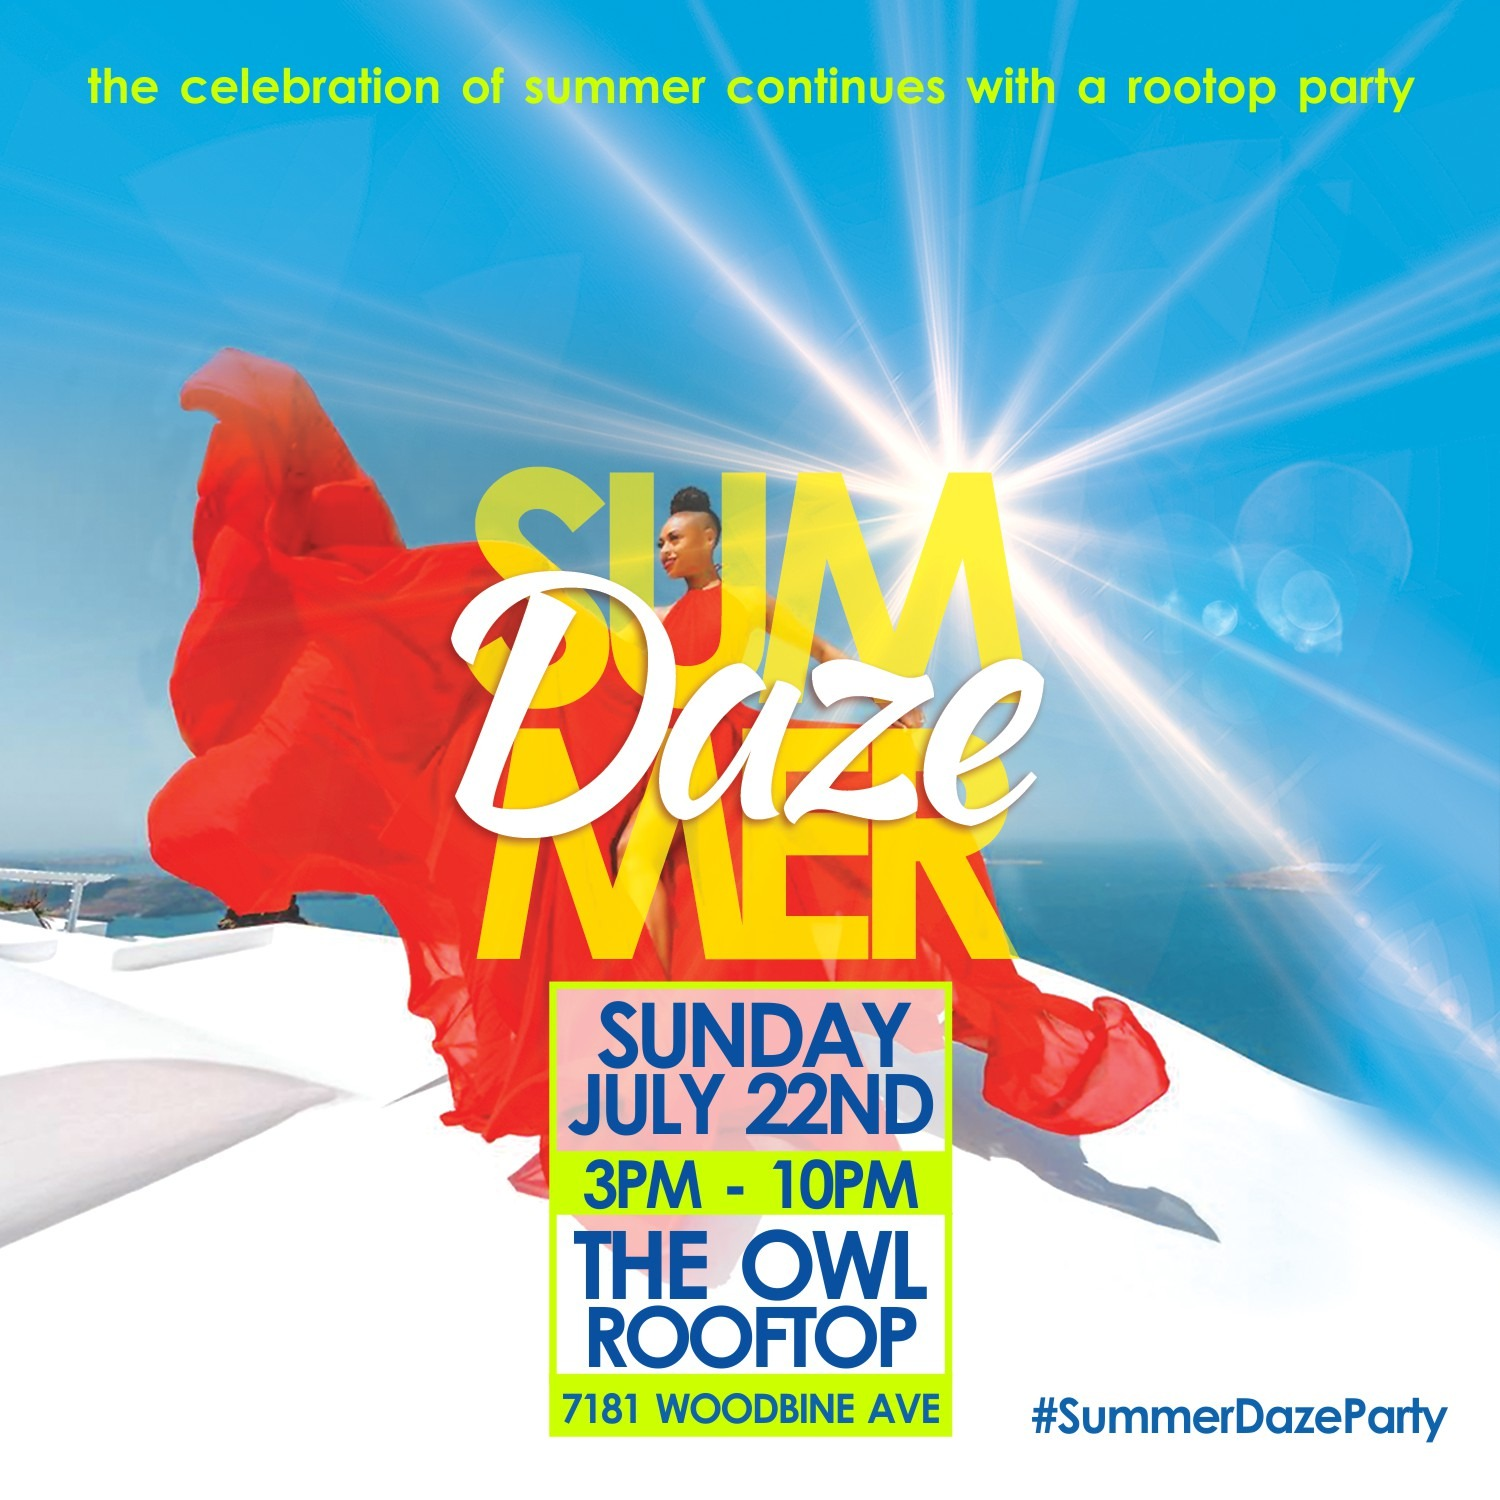 SUMMER DAZE - ROOFTOP PATIO PARTY